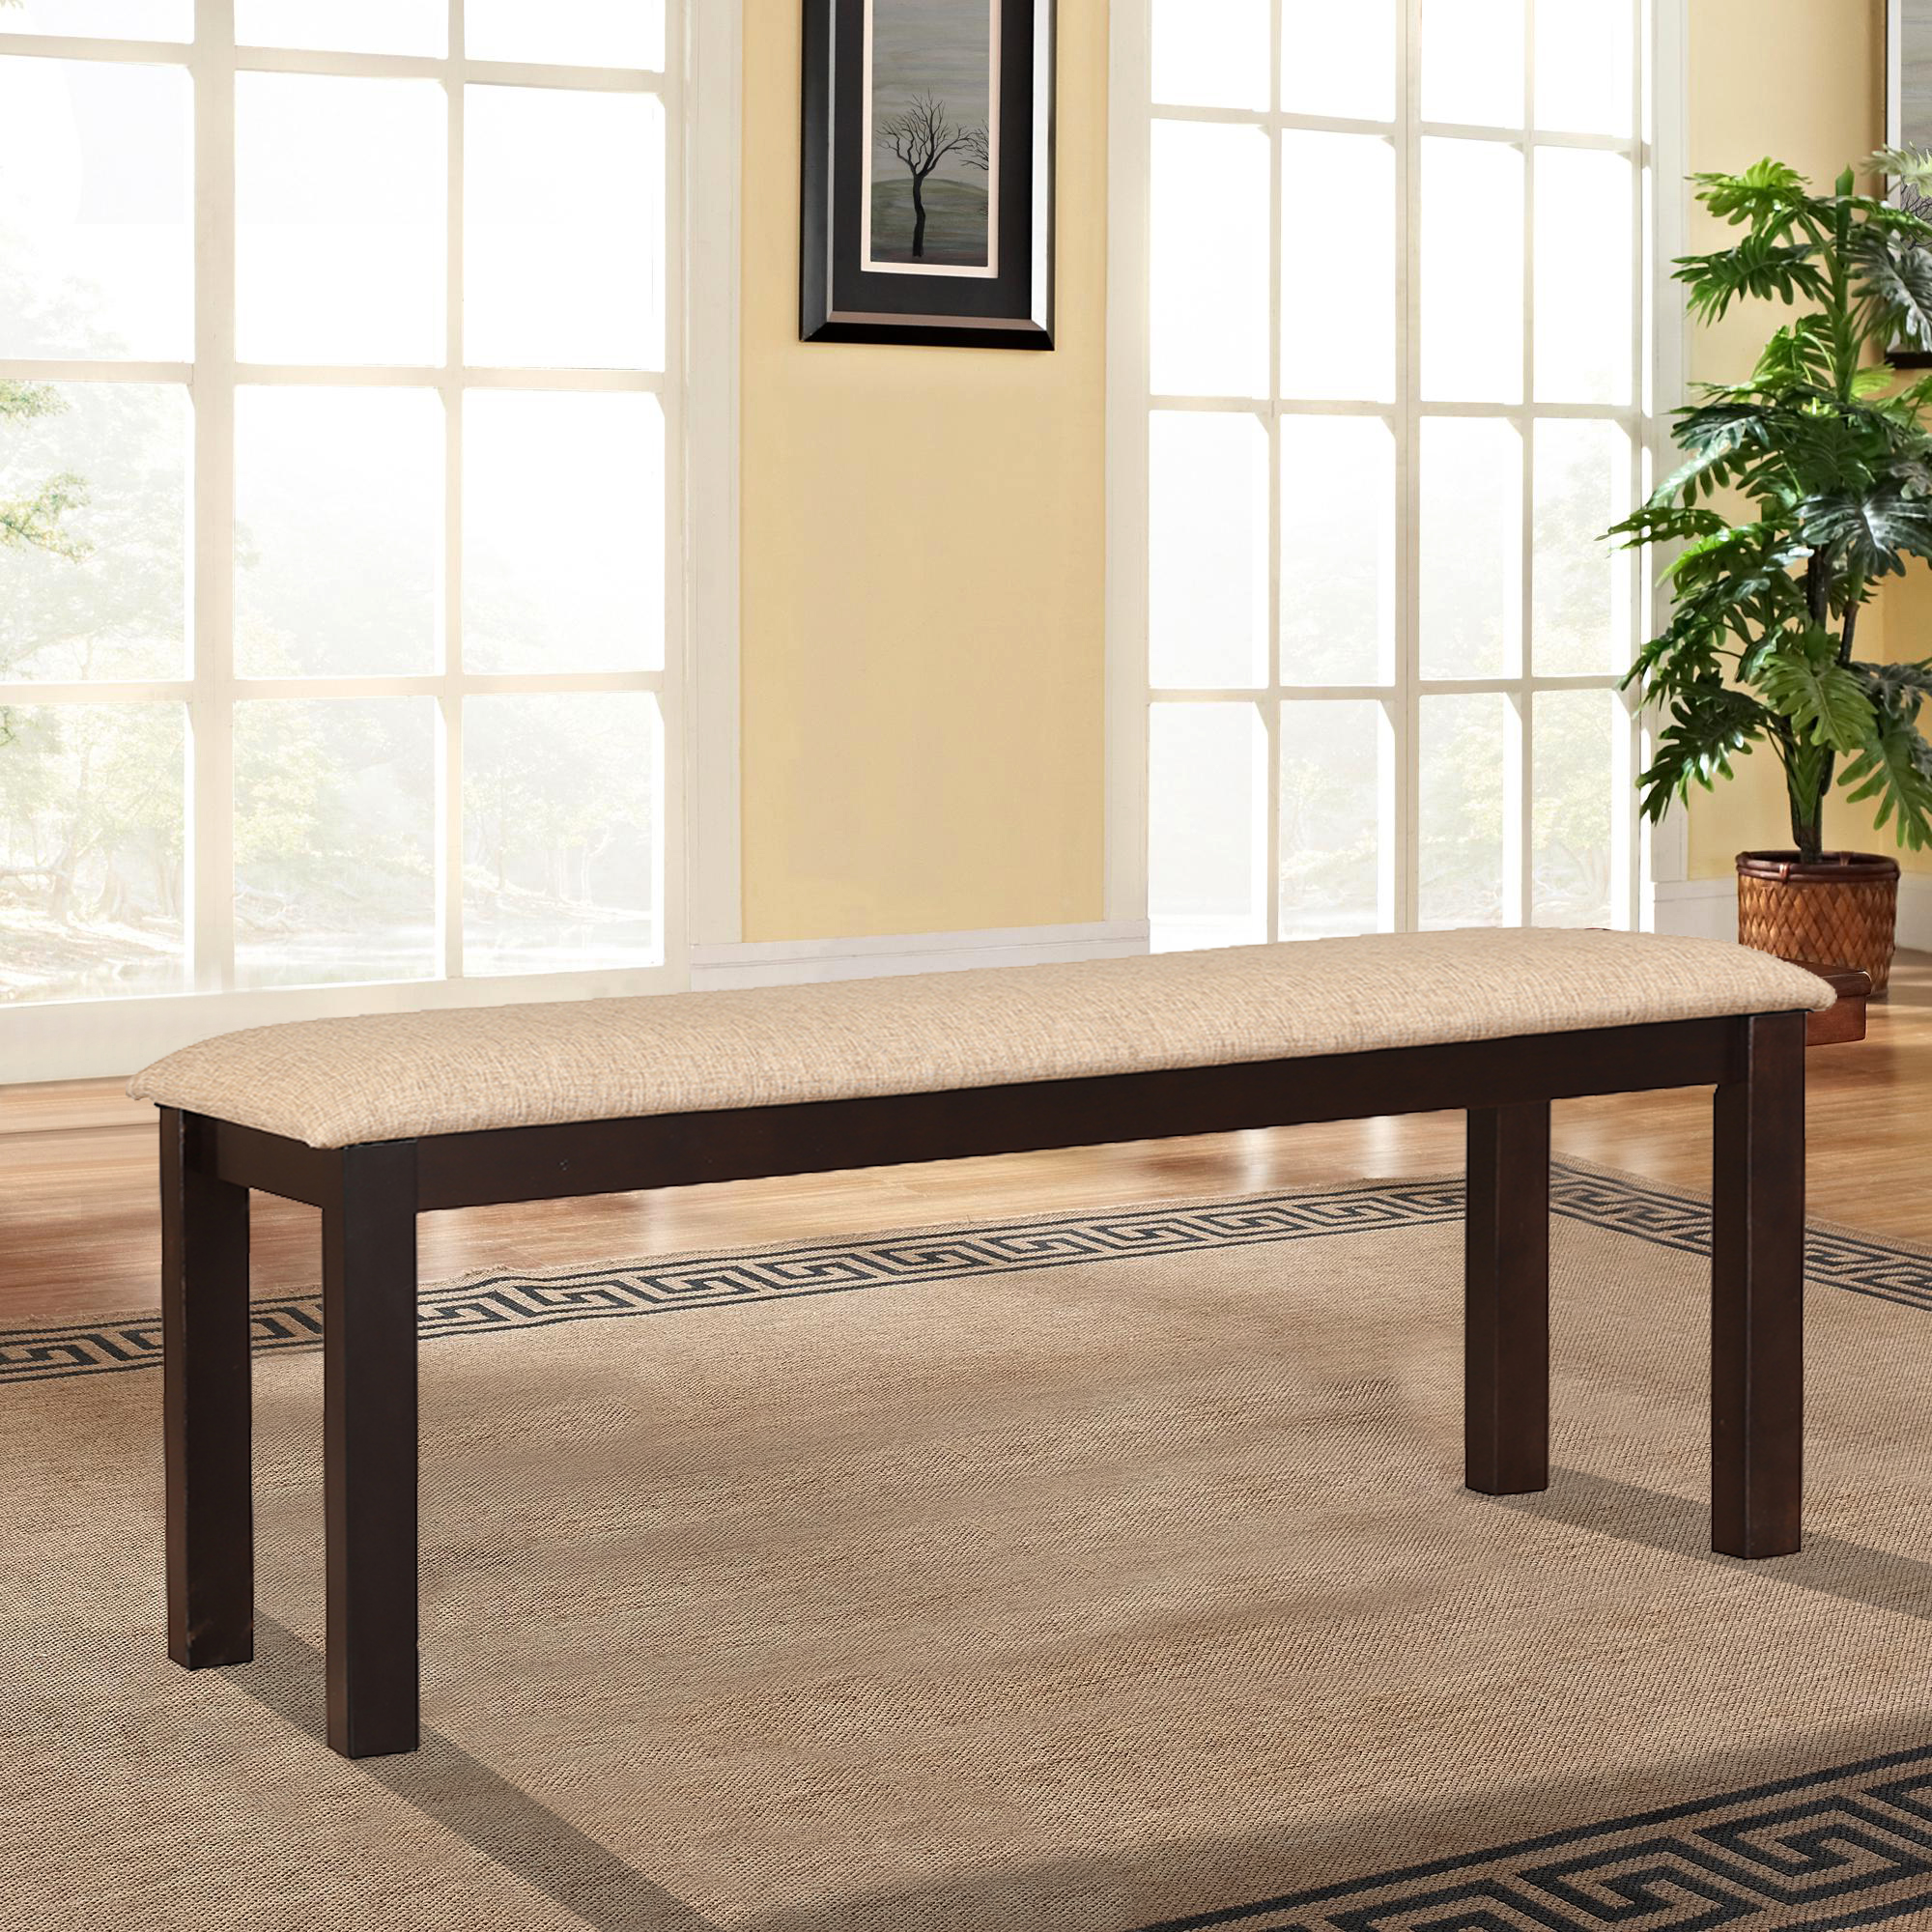 Bahubali rubber wood dining bench in walnut colour by hometown